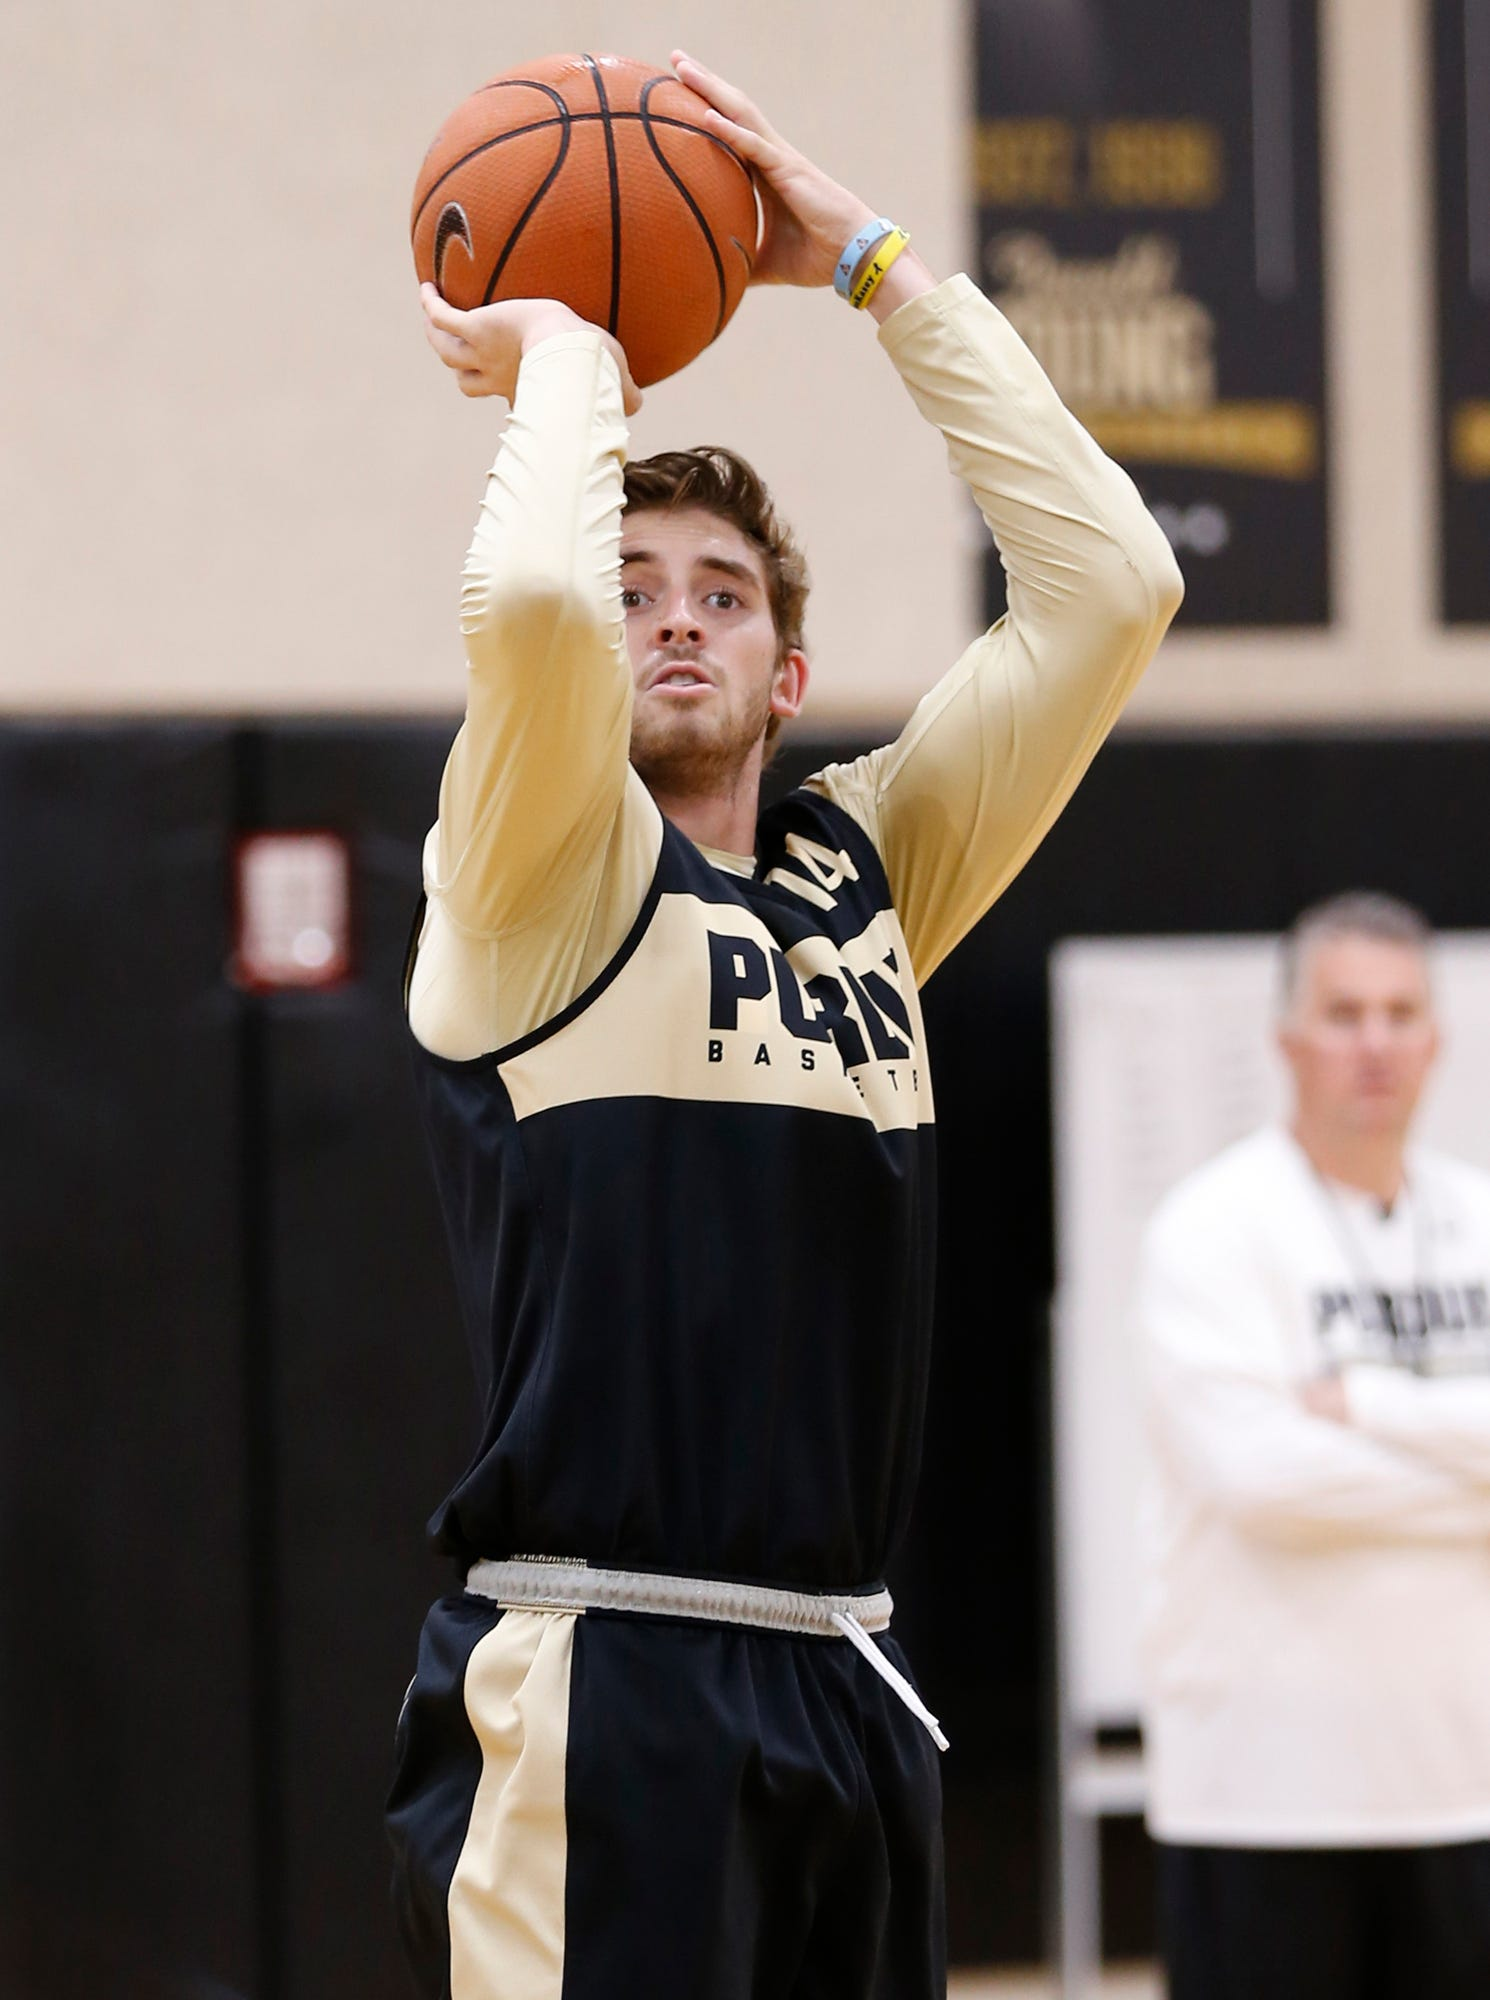 Ryan Cline with a shot during the first official practice of the season for Purdue men's basketball Tuesday, September 25, 2018, at Cardinal Court in Mackey Arena.